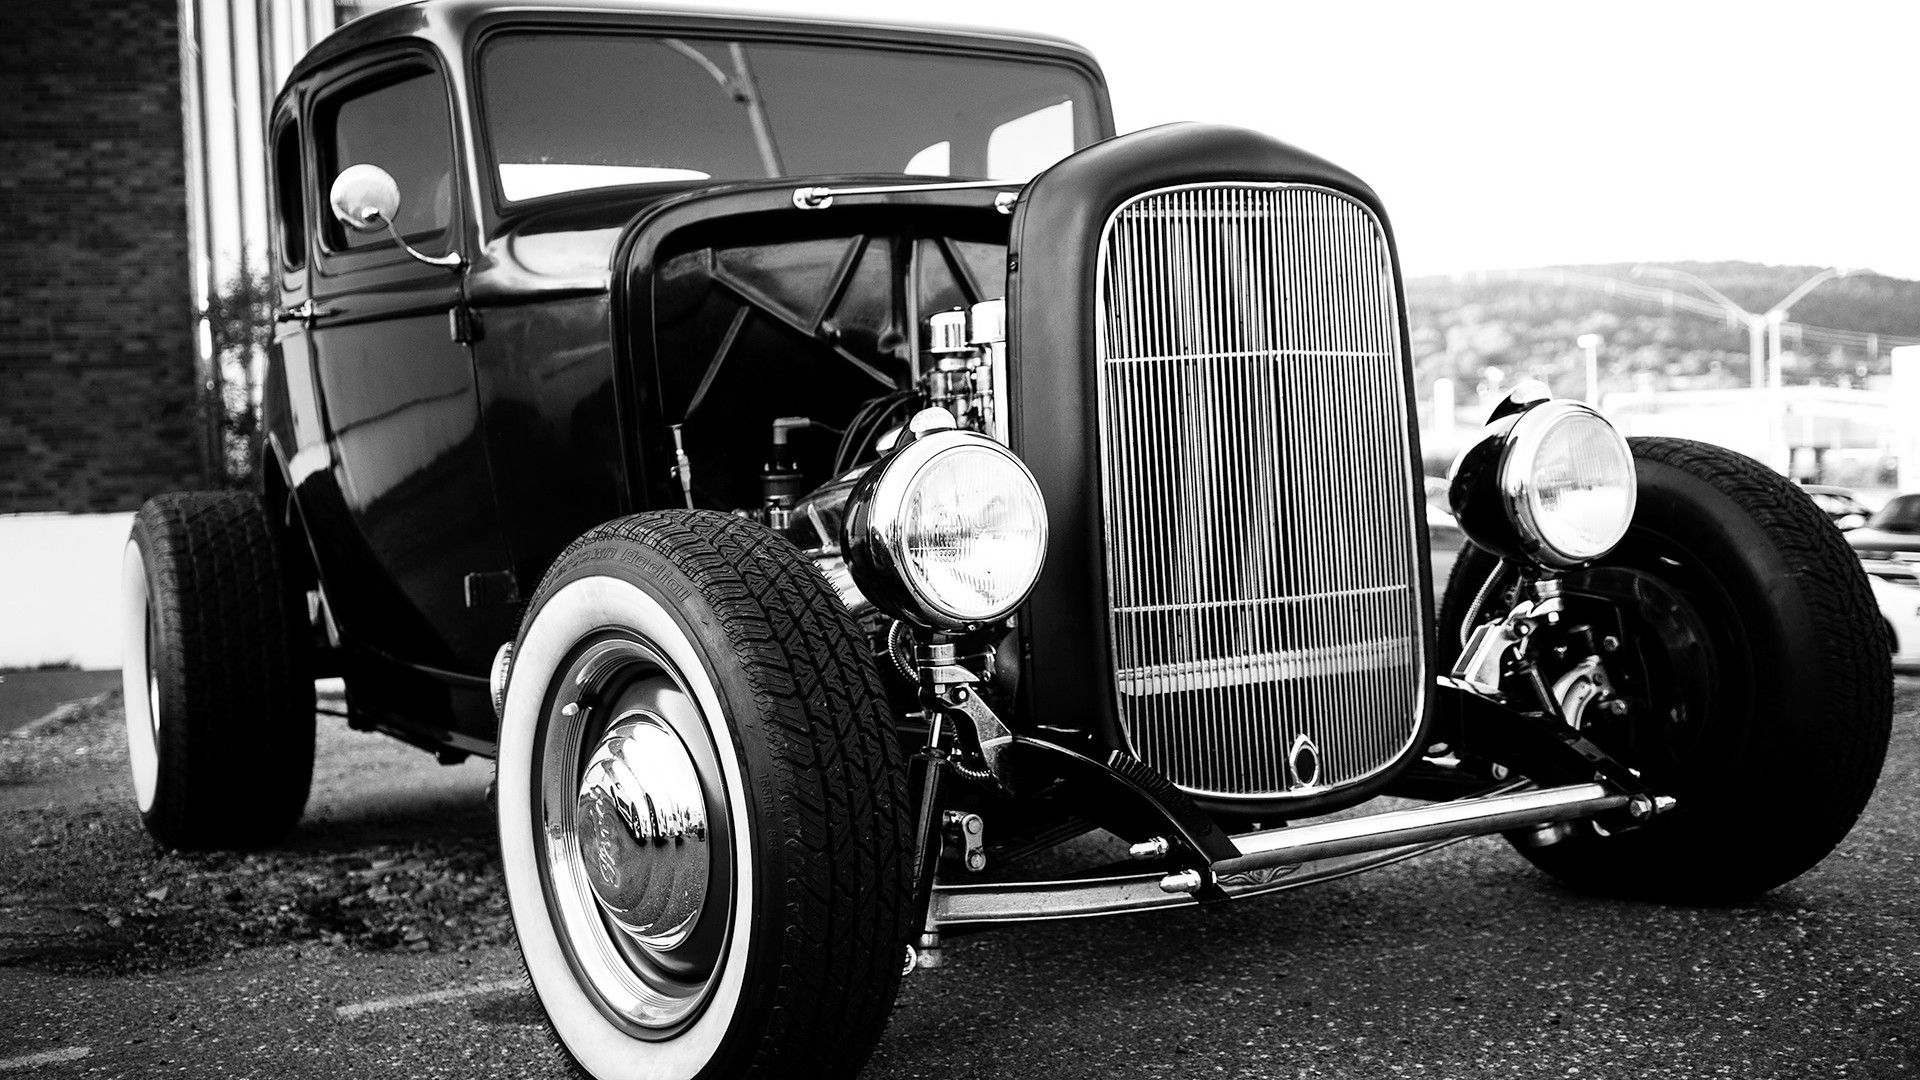 Old Cars Black And White Background Hd Wallpapers Retro